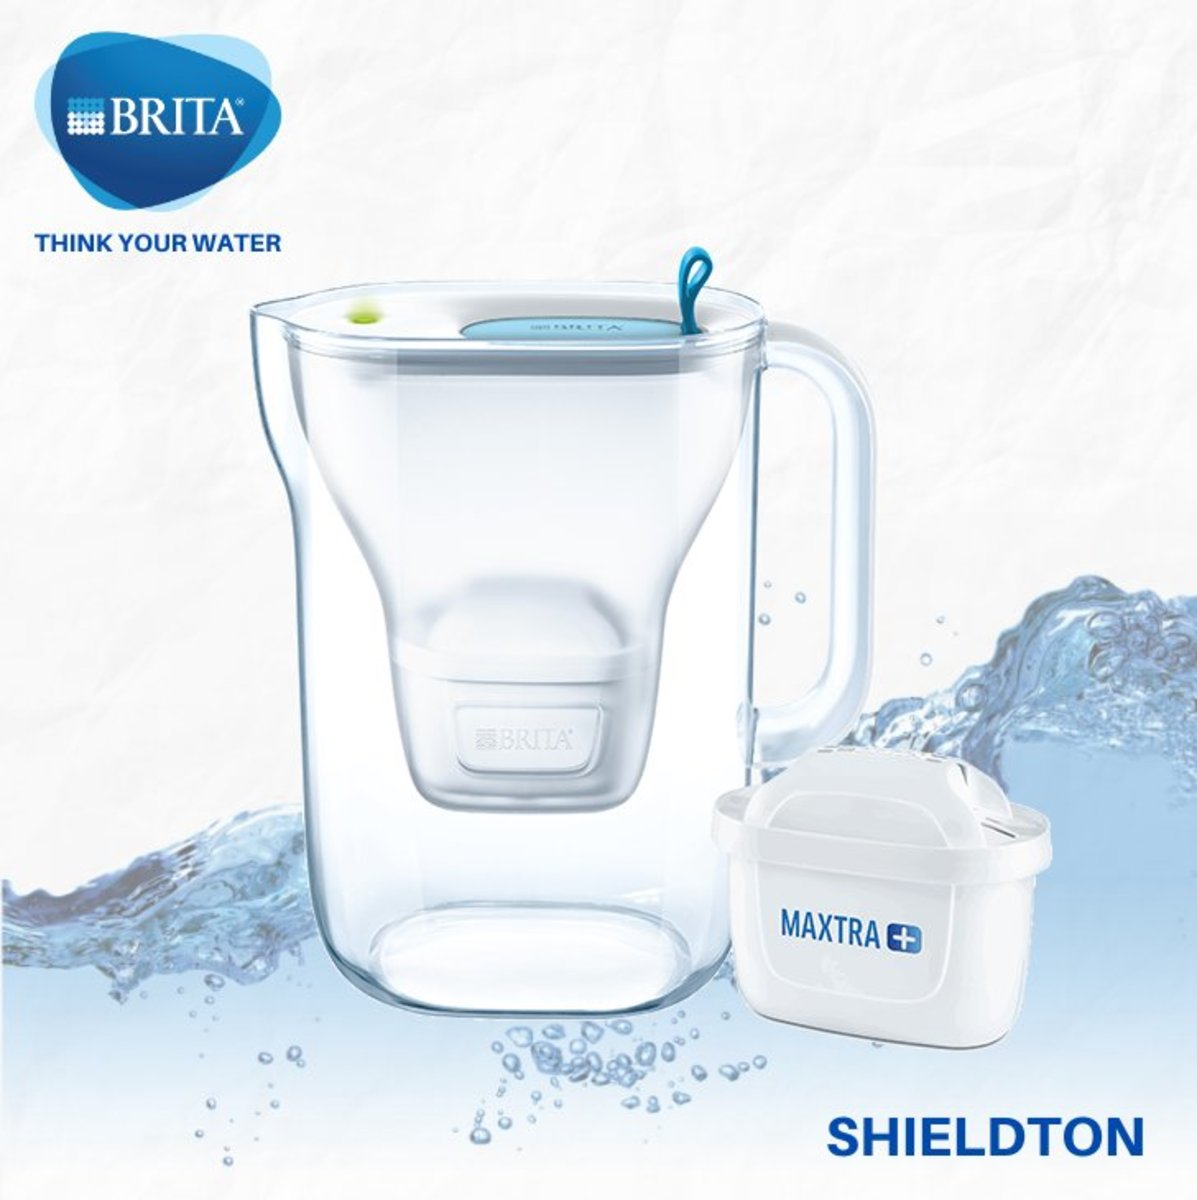 Style XL 3.6L LED water filter jug (blue)